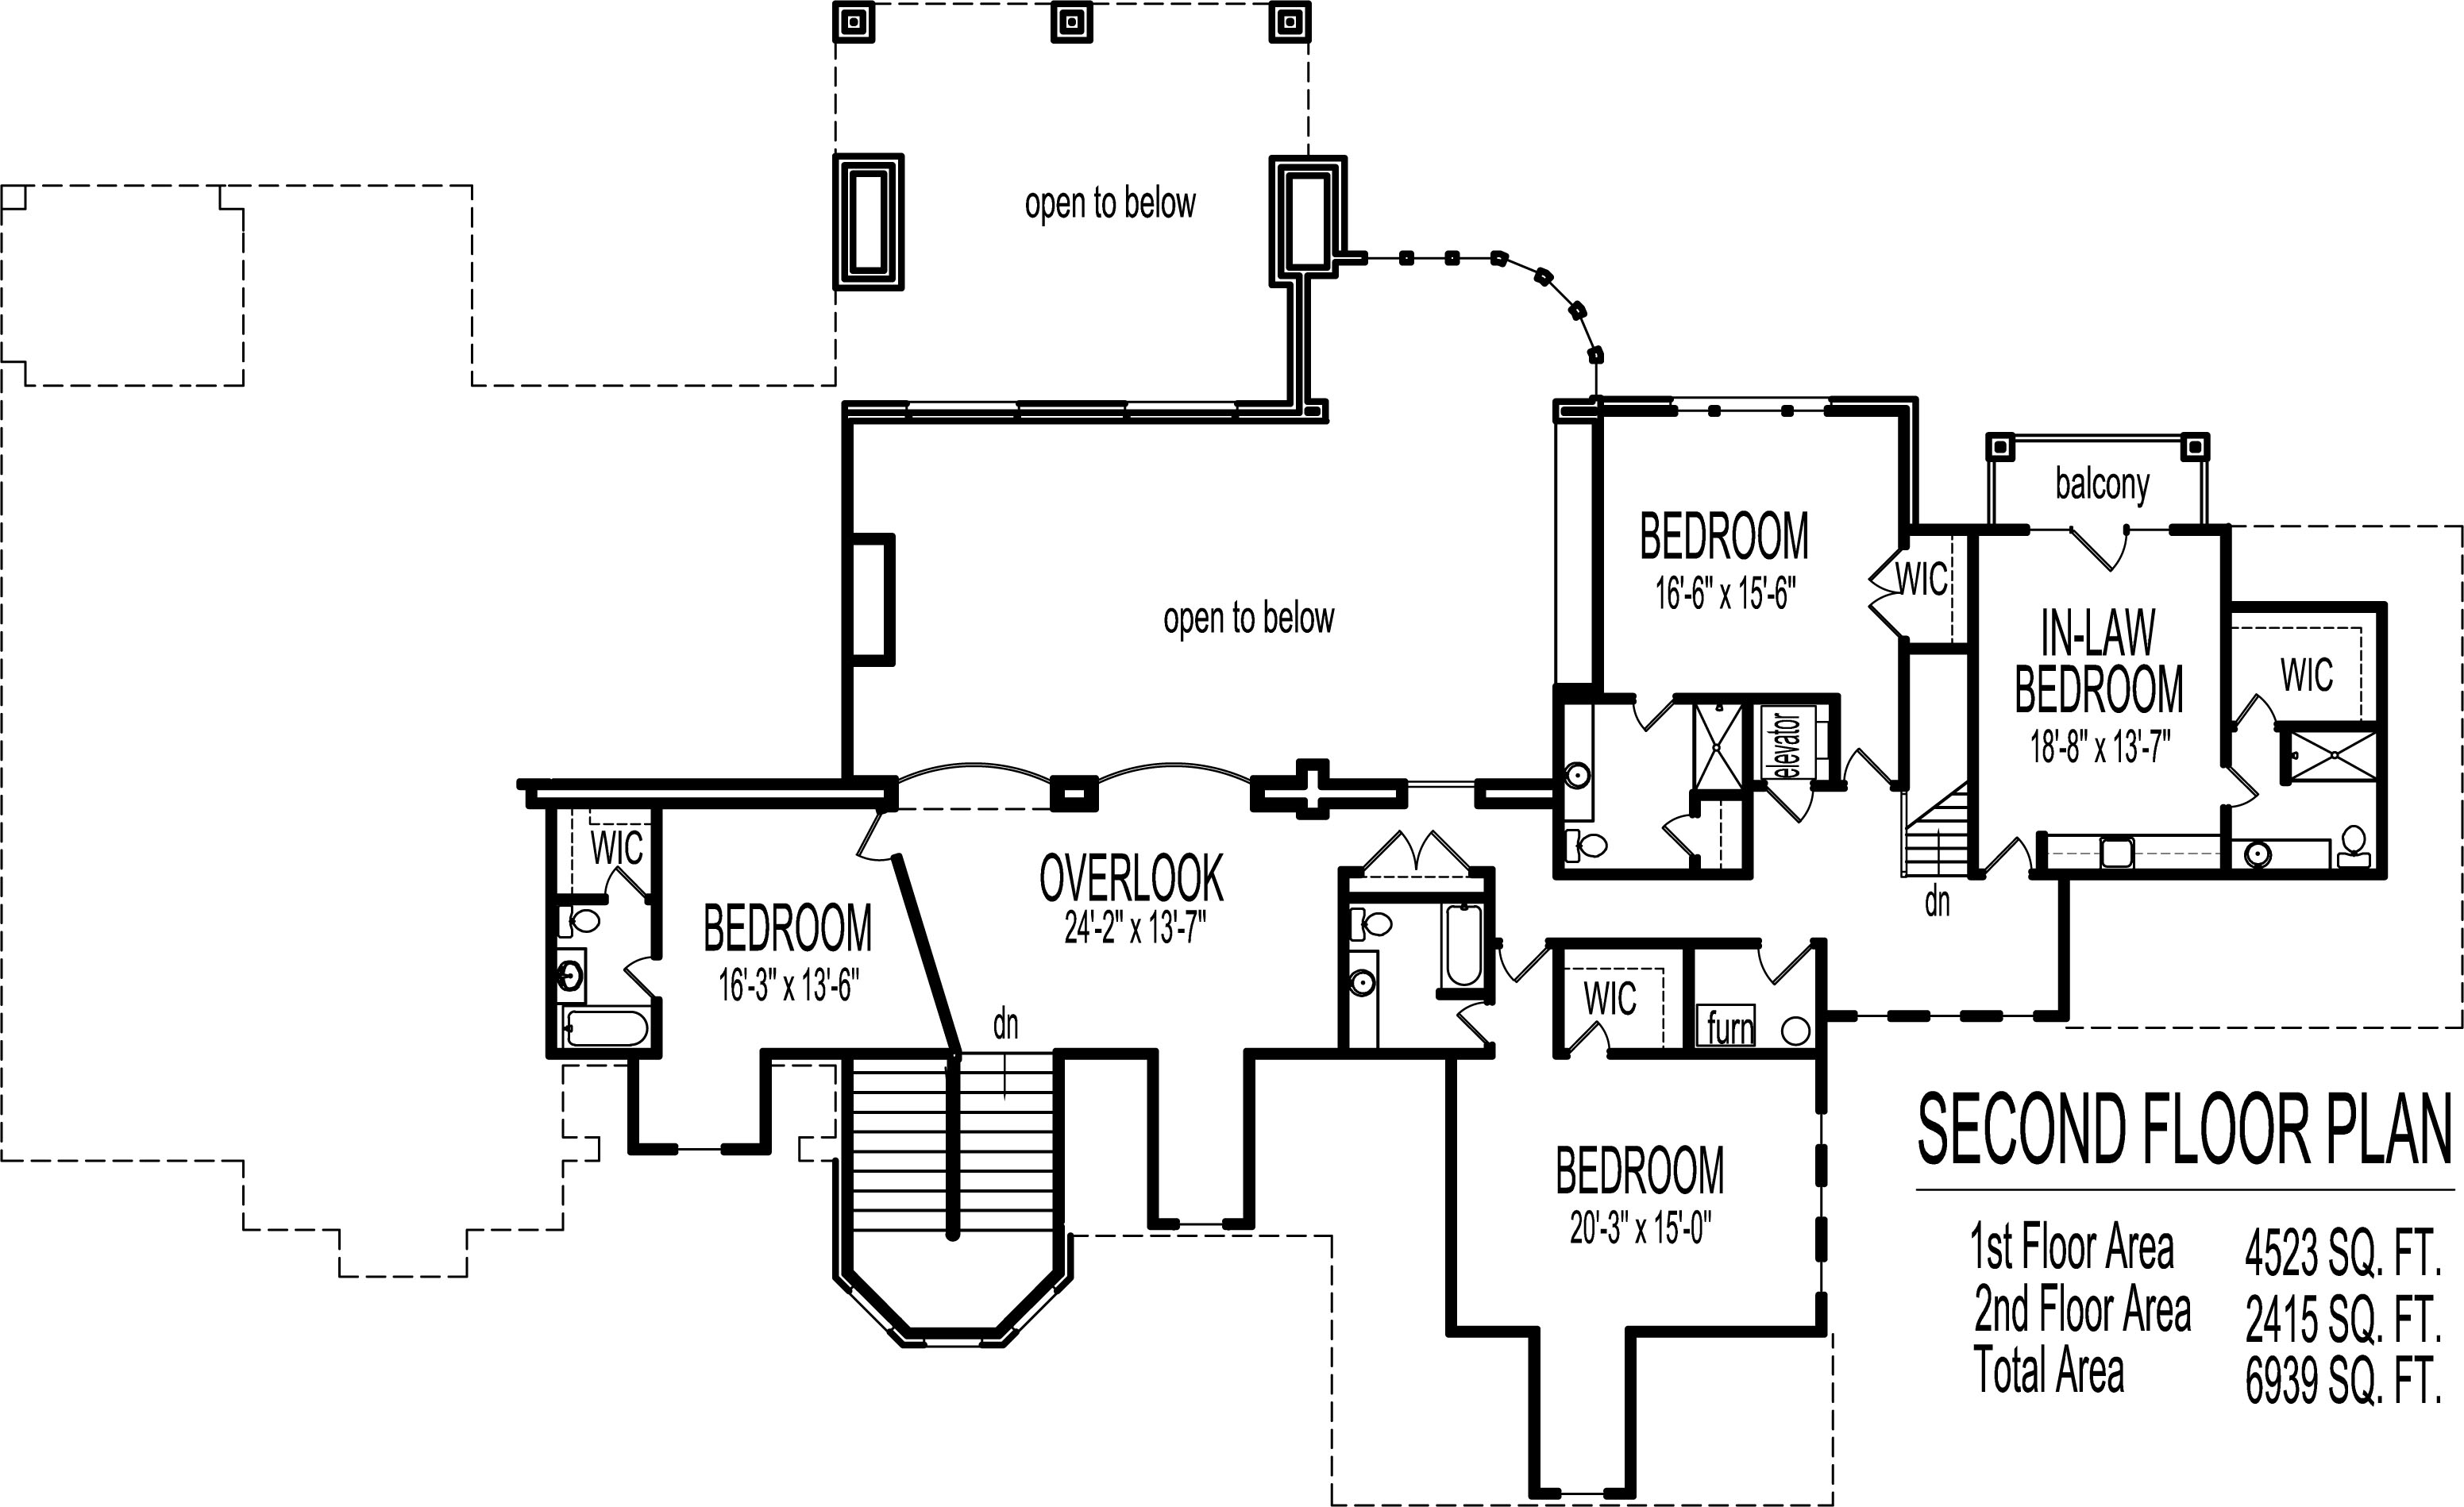 5 bedroom 2 story dream house floor plans las vegas sunrise manor henderson nevada reno paradise - Second Floor Floor Plans 2